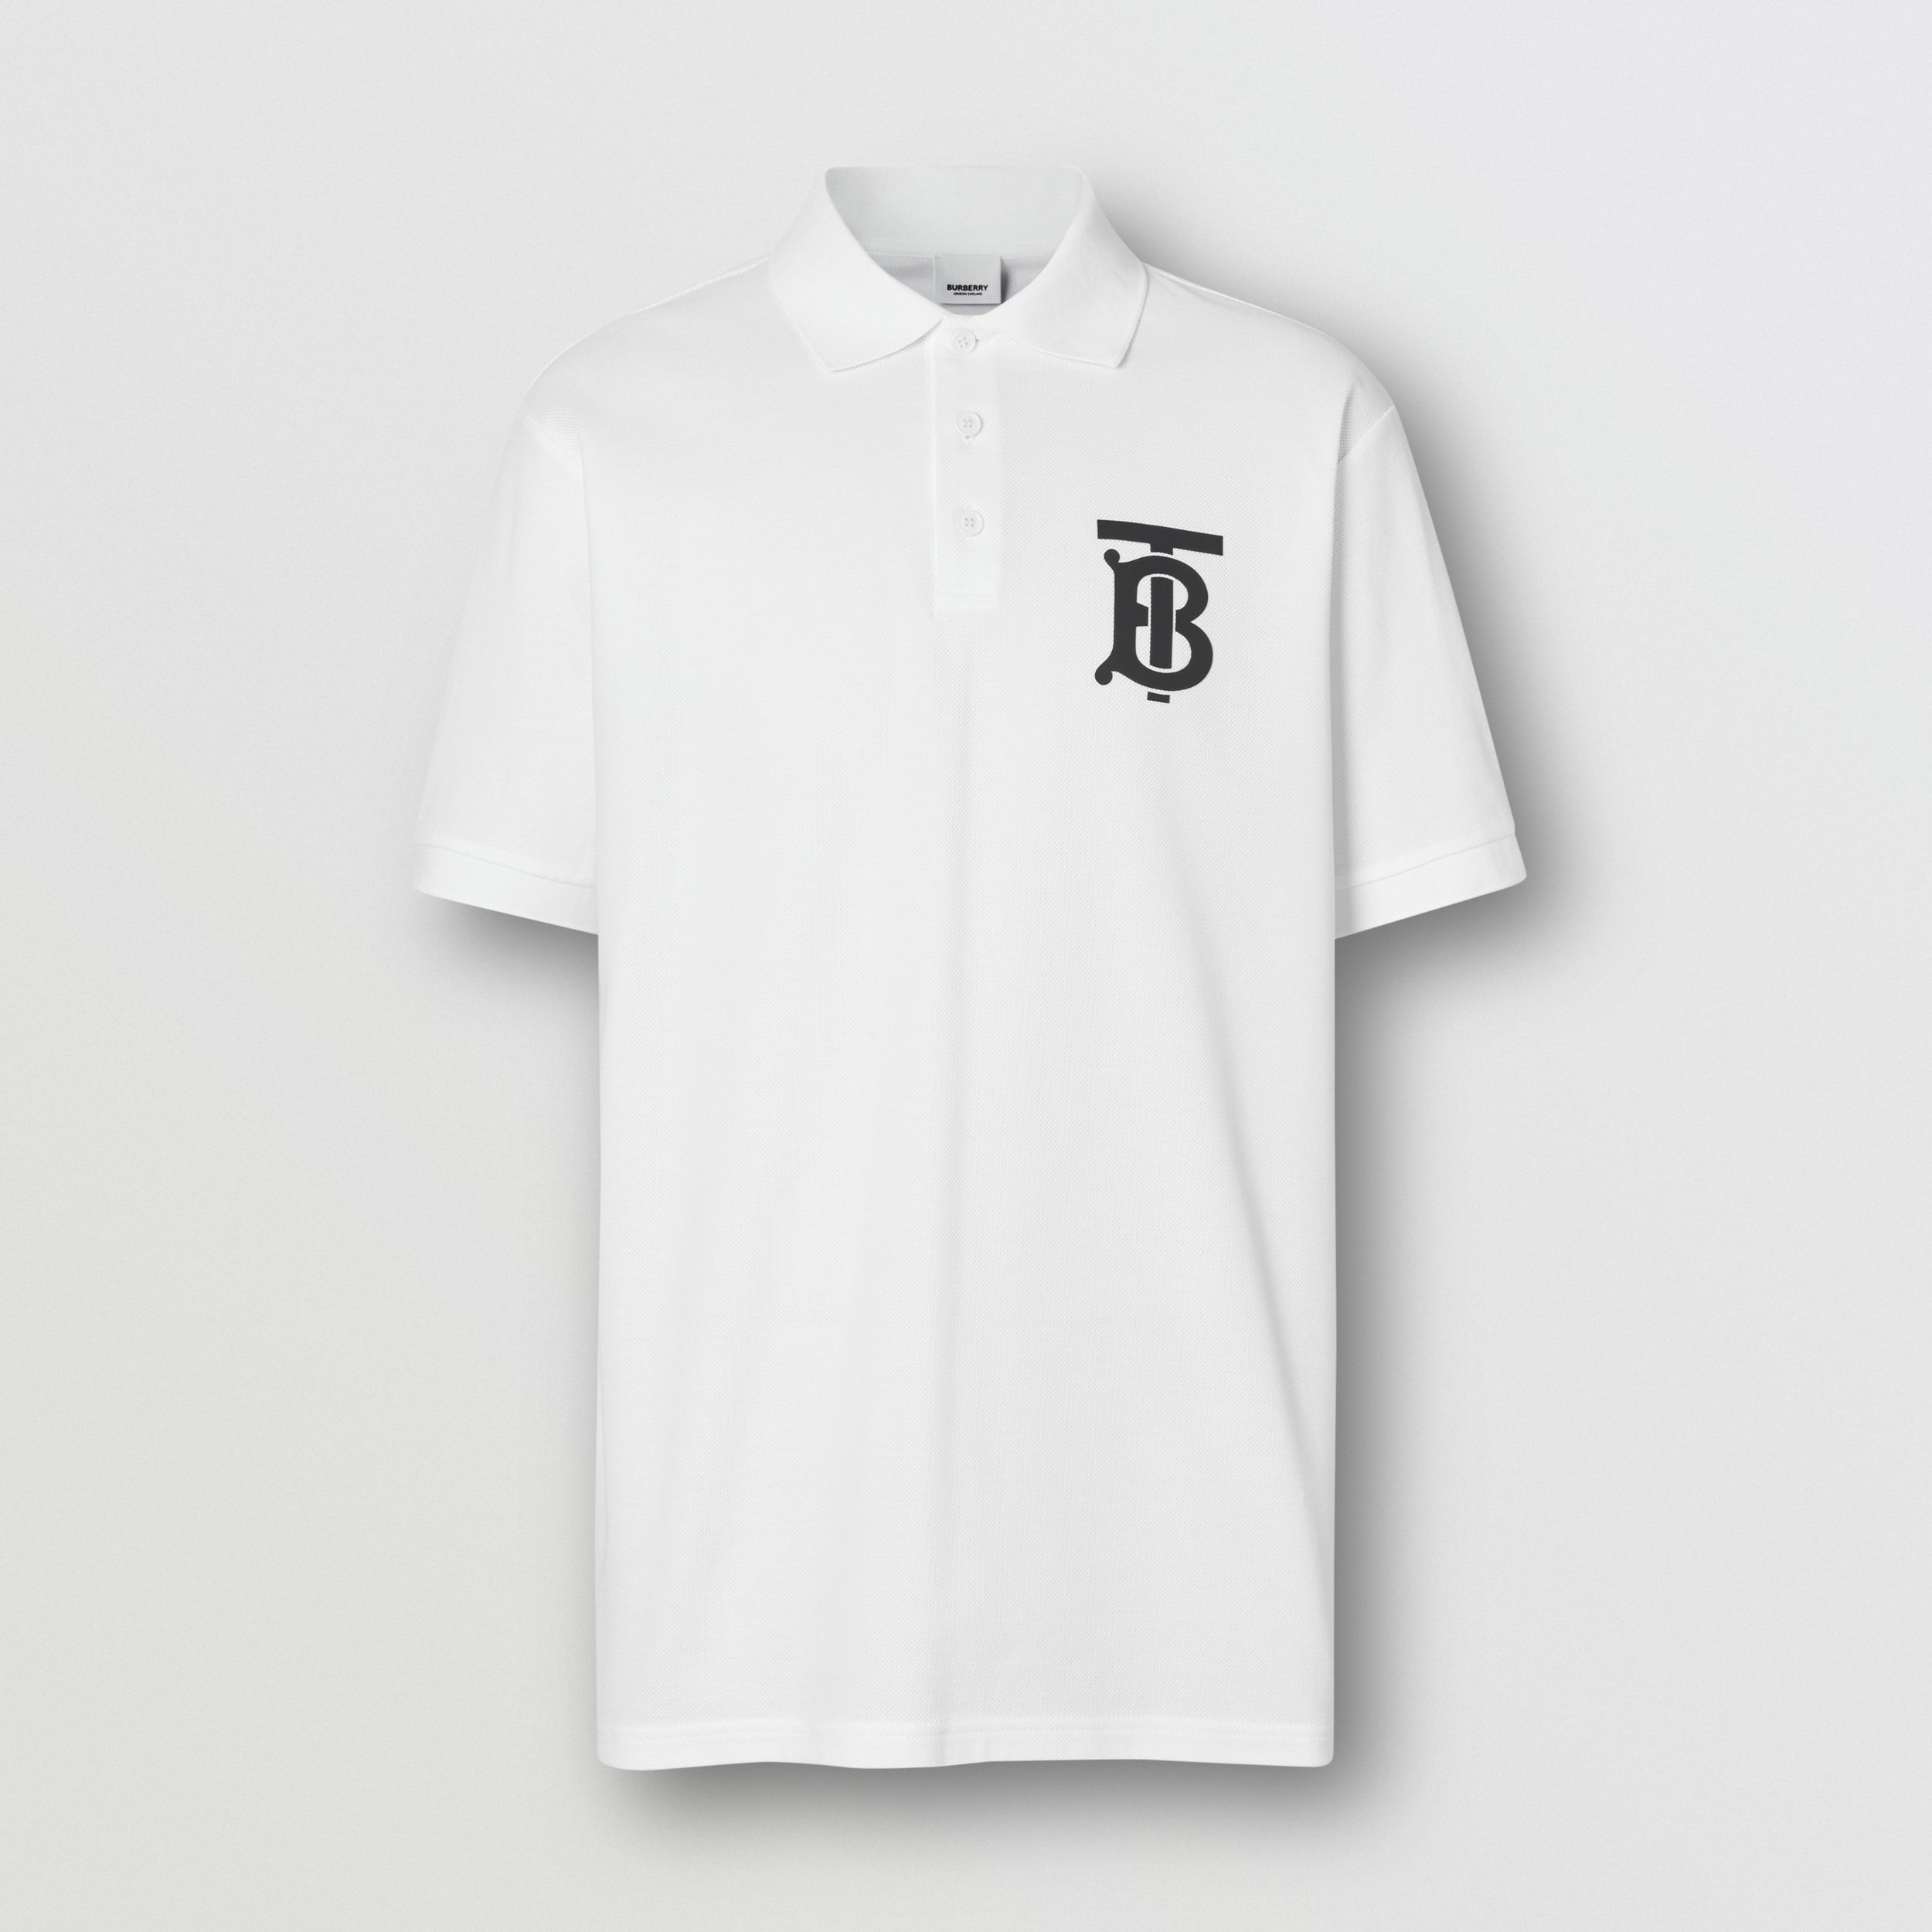 Monogram Motif Cotton Piqué Oversized Polo Shirt in White - Men | Burberry - 4